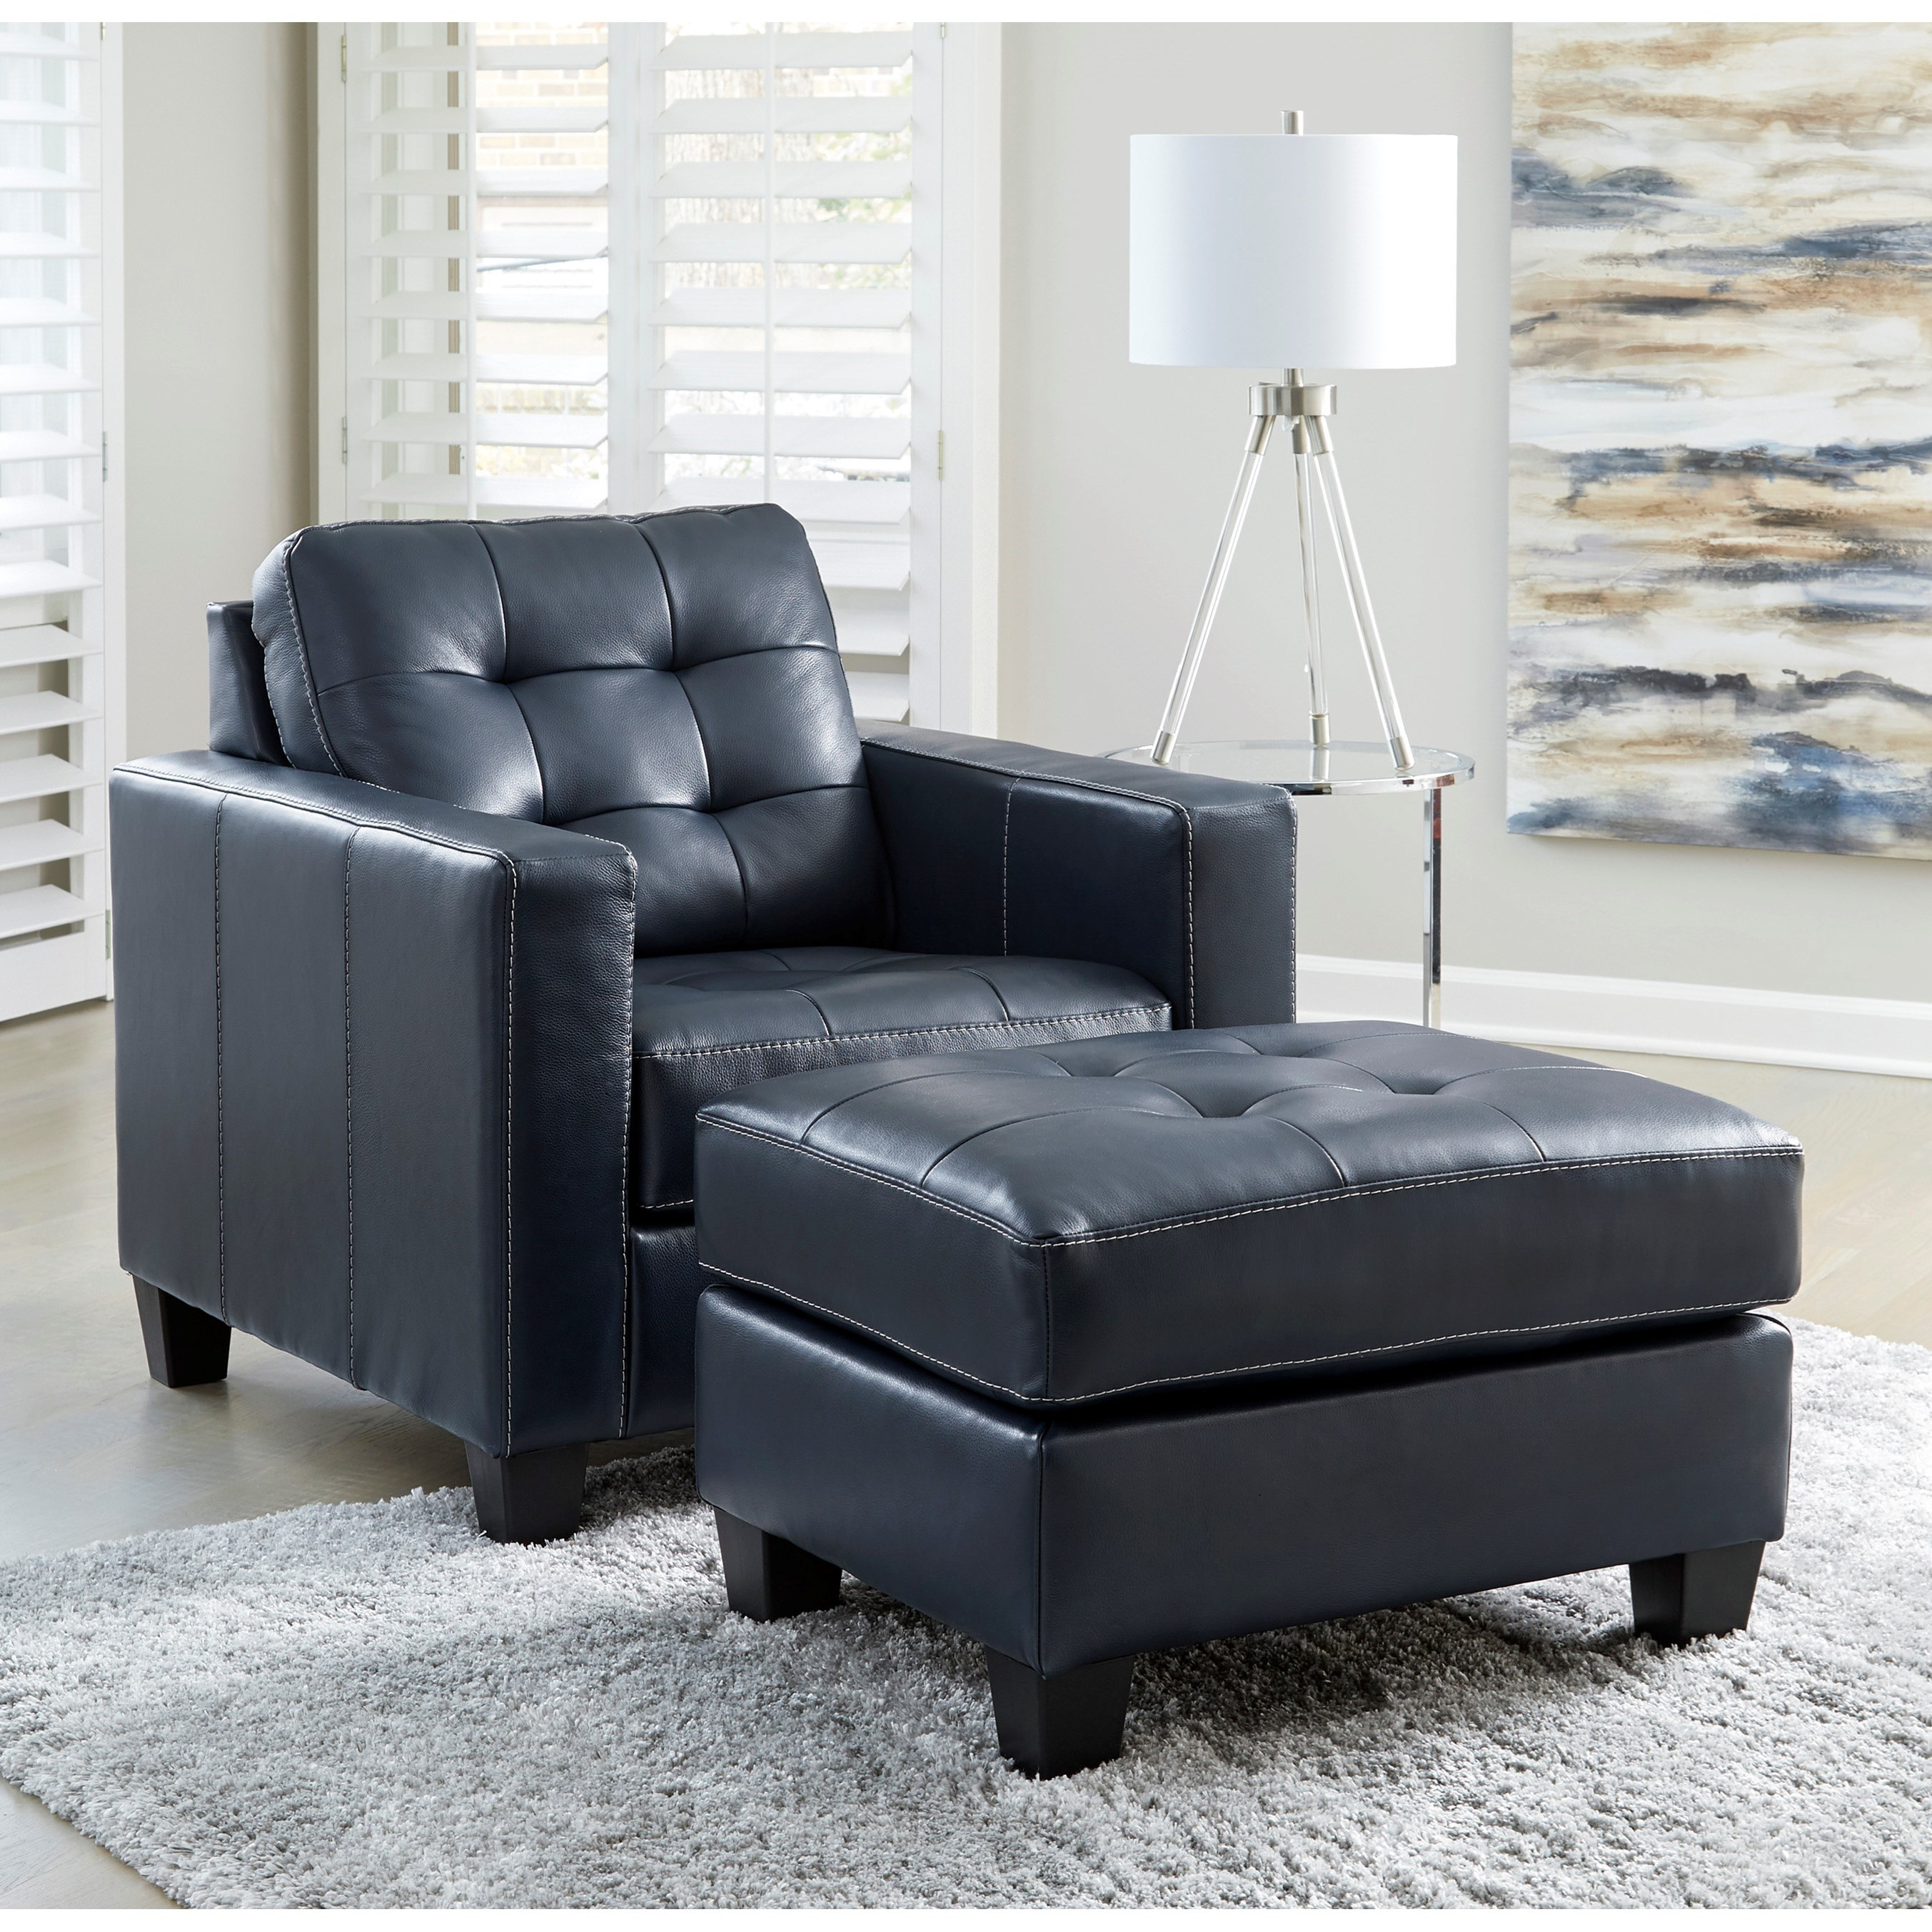 Altonbury Chair and Ottoman Set by Signature Design by Ashley at Carolina Direct